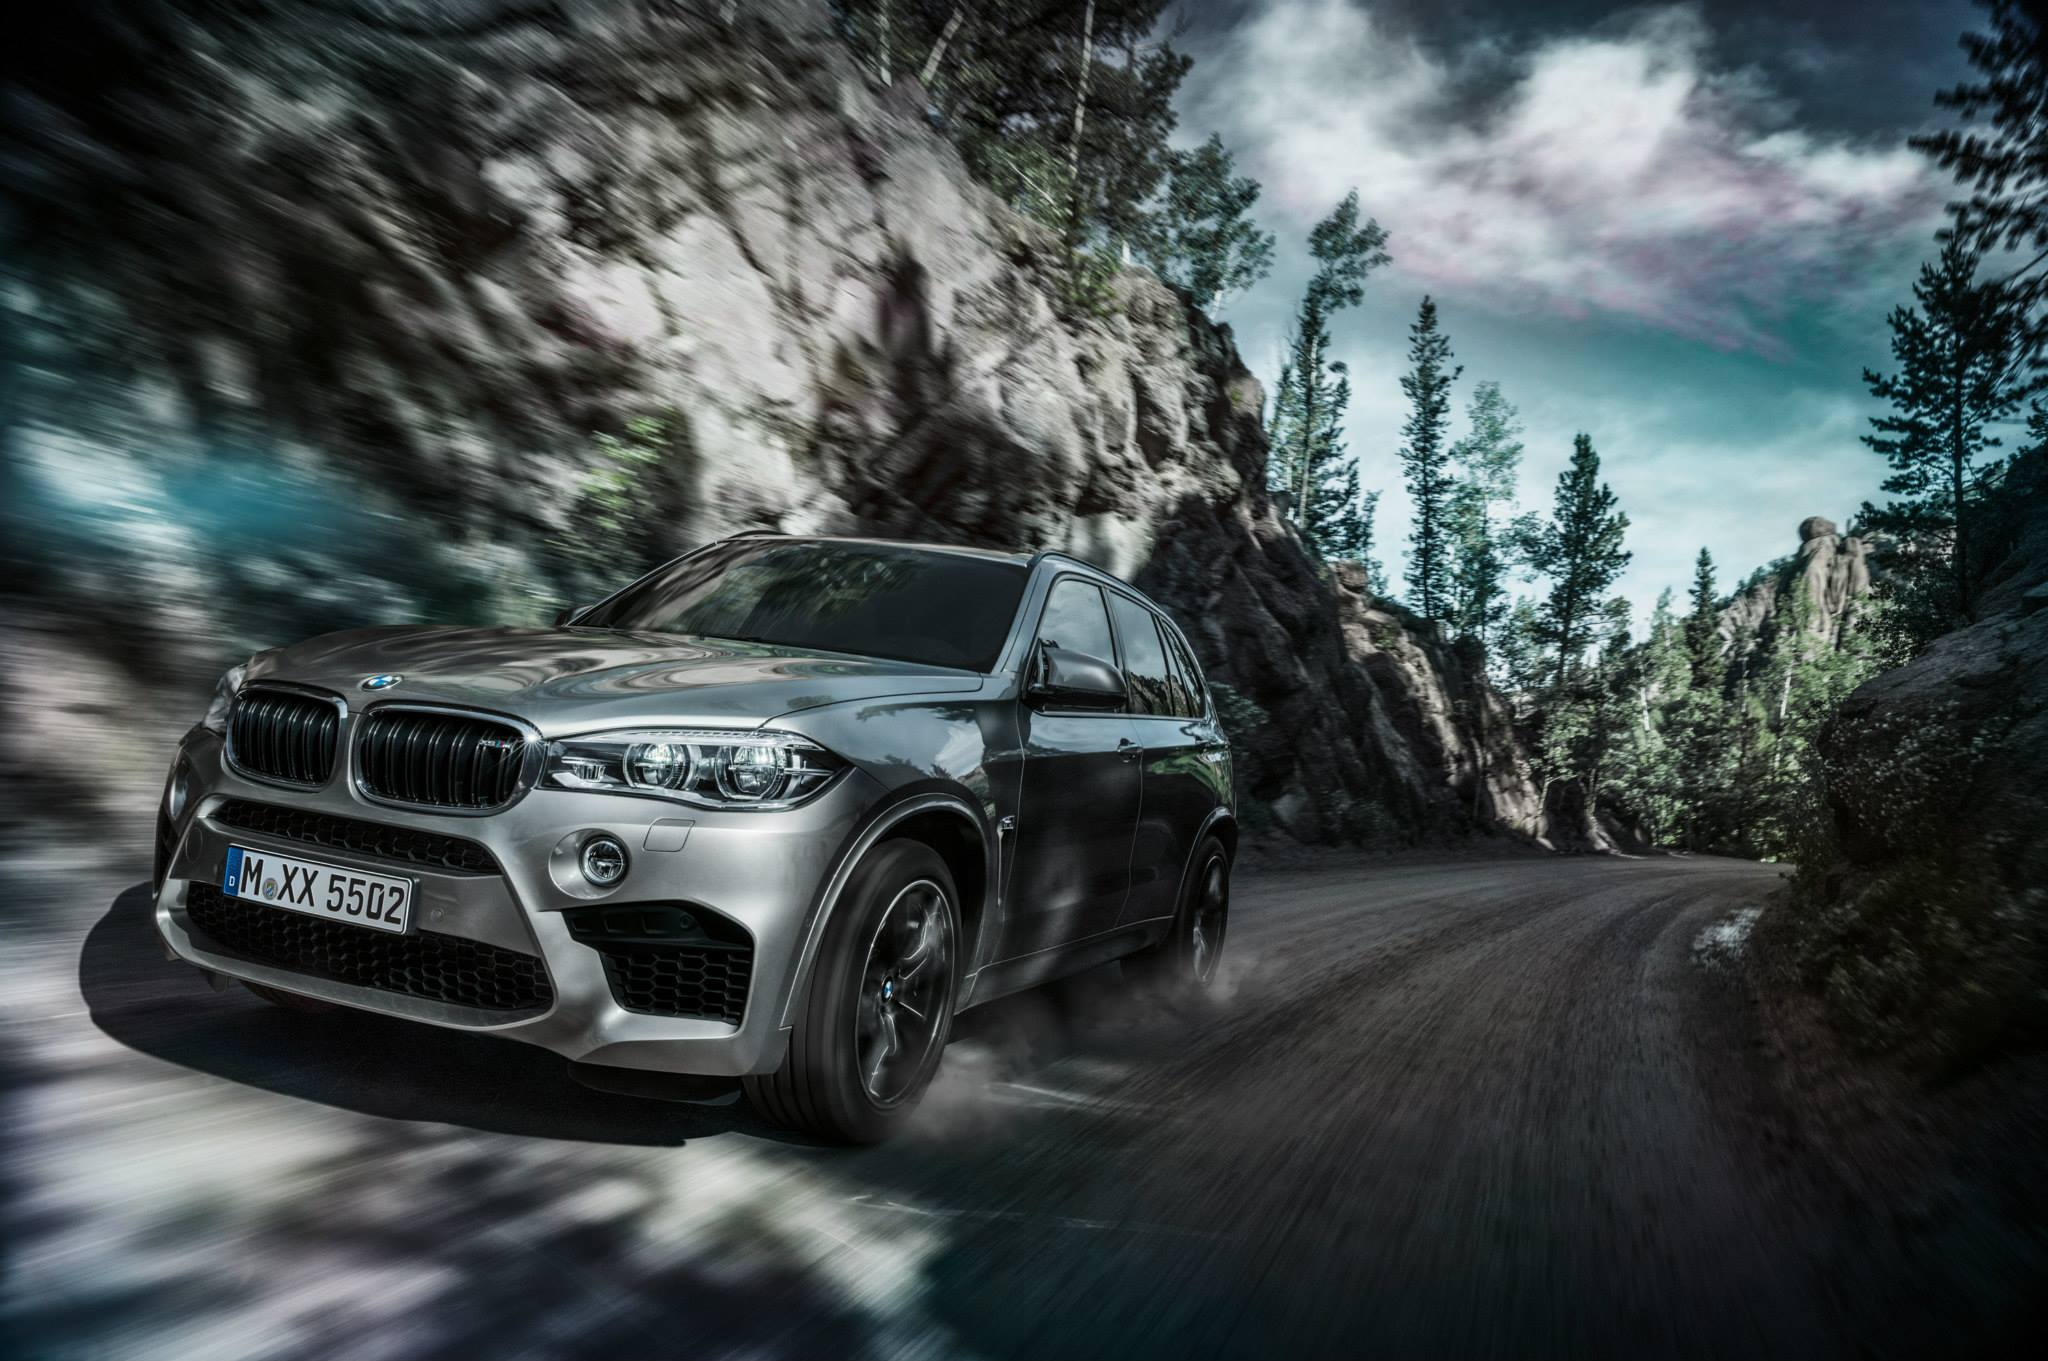 Bmw x5 wallpapers wallpaper cave bmw x5 full hd quality wallpapers archive bsnscb graphics voltagebd Gallery